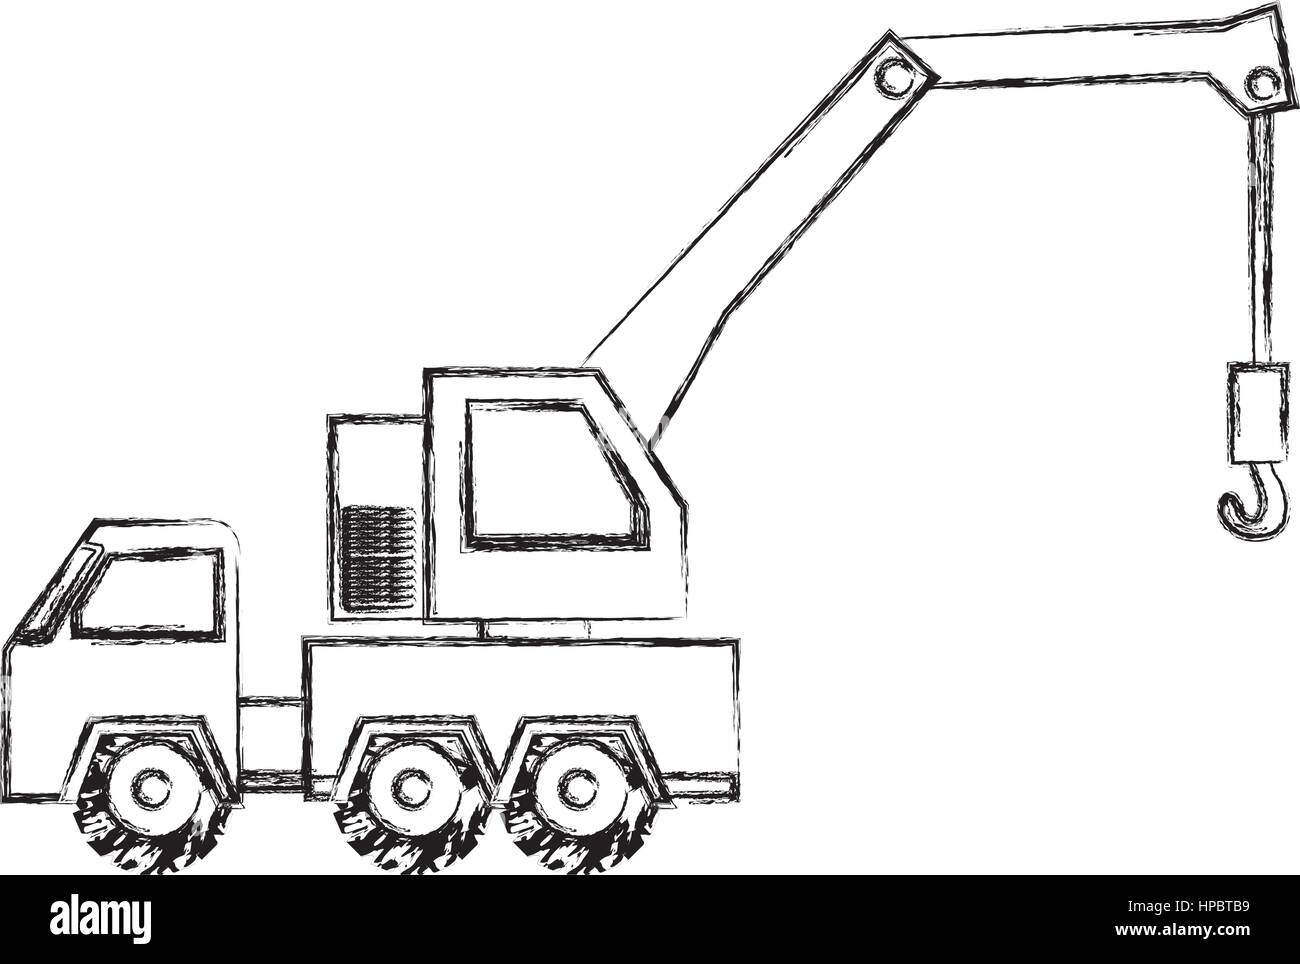 monochrome contour hand drawing of tow truck vehicle transport ...